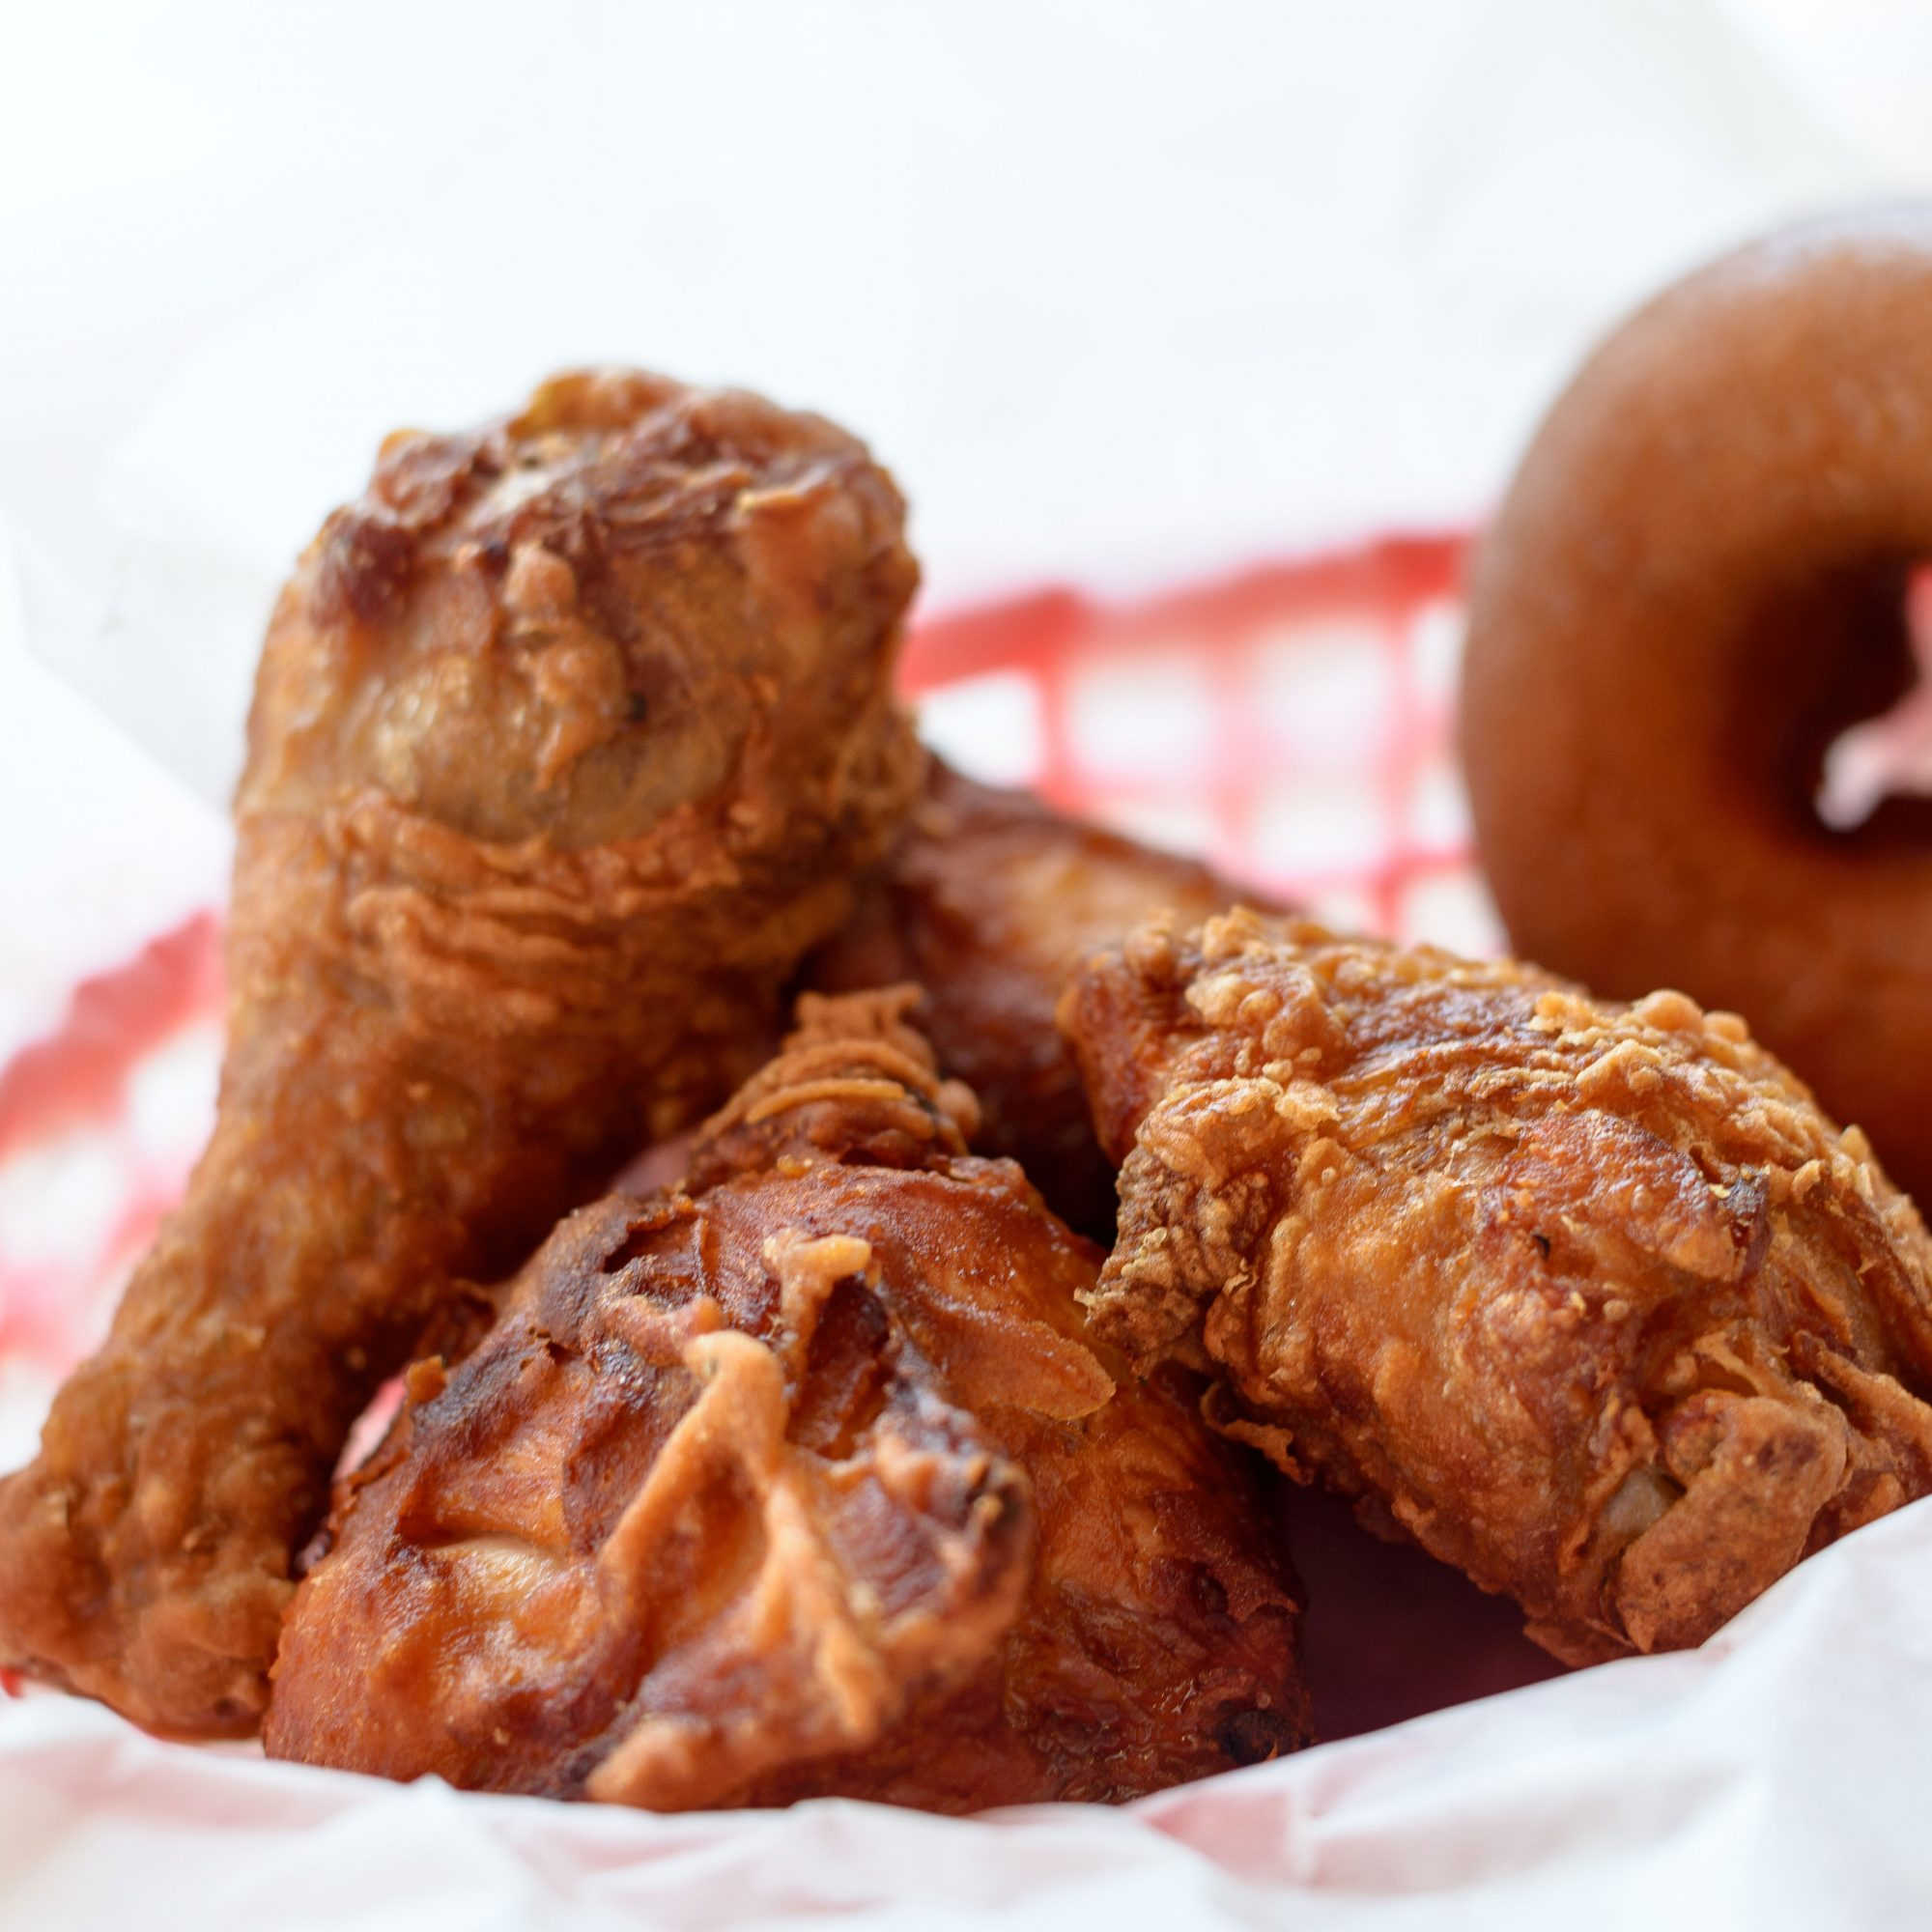 Best Fried Chicken in the U.S.: Michael Solomonov's Federal Donuts